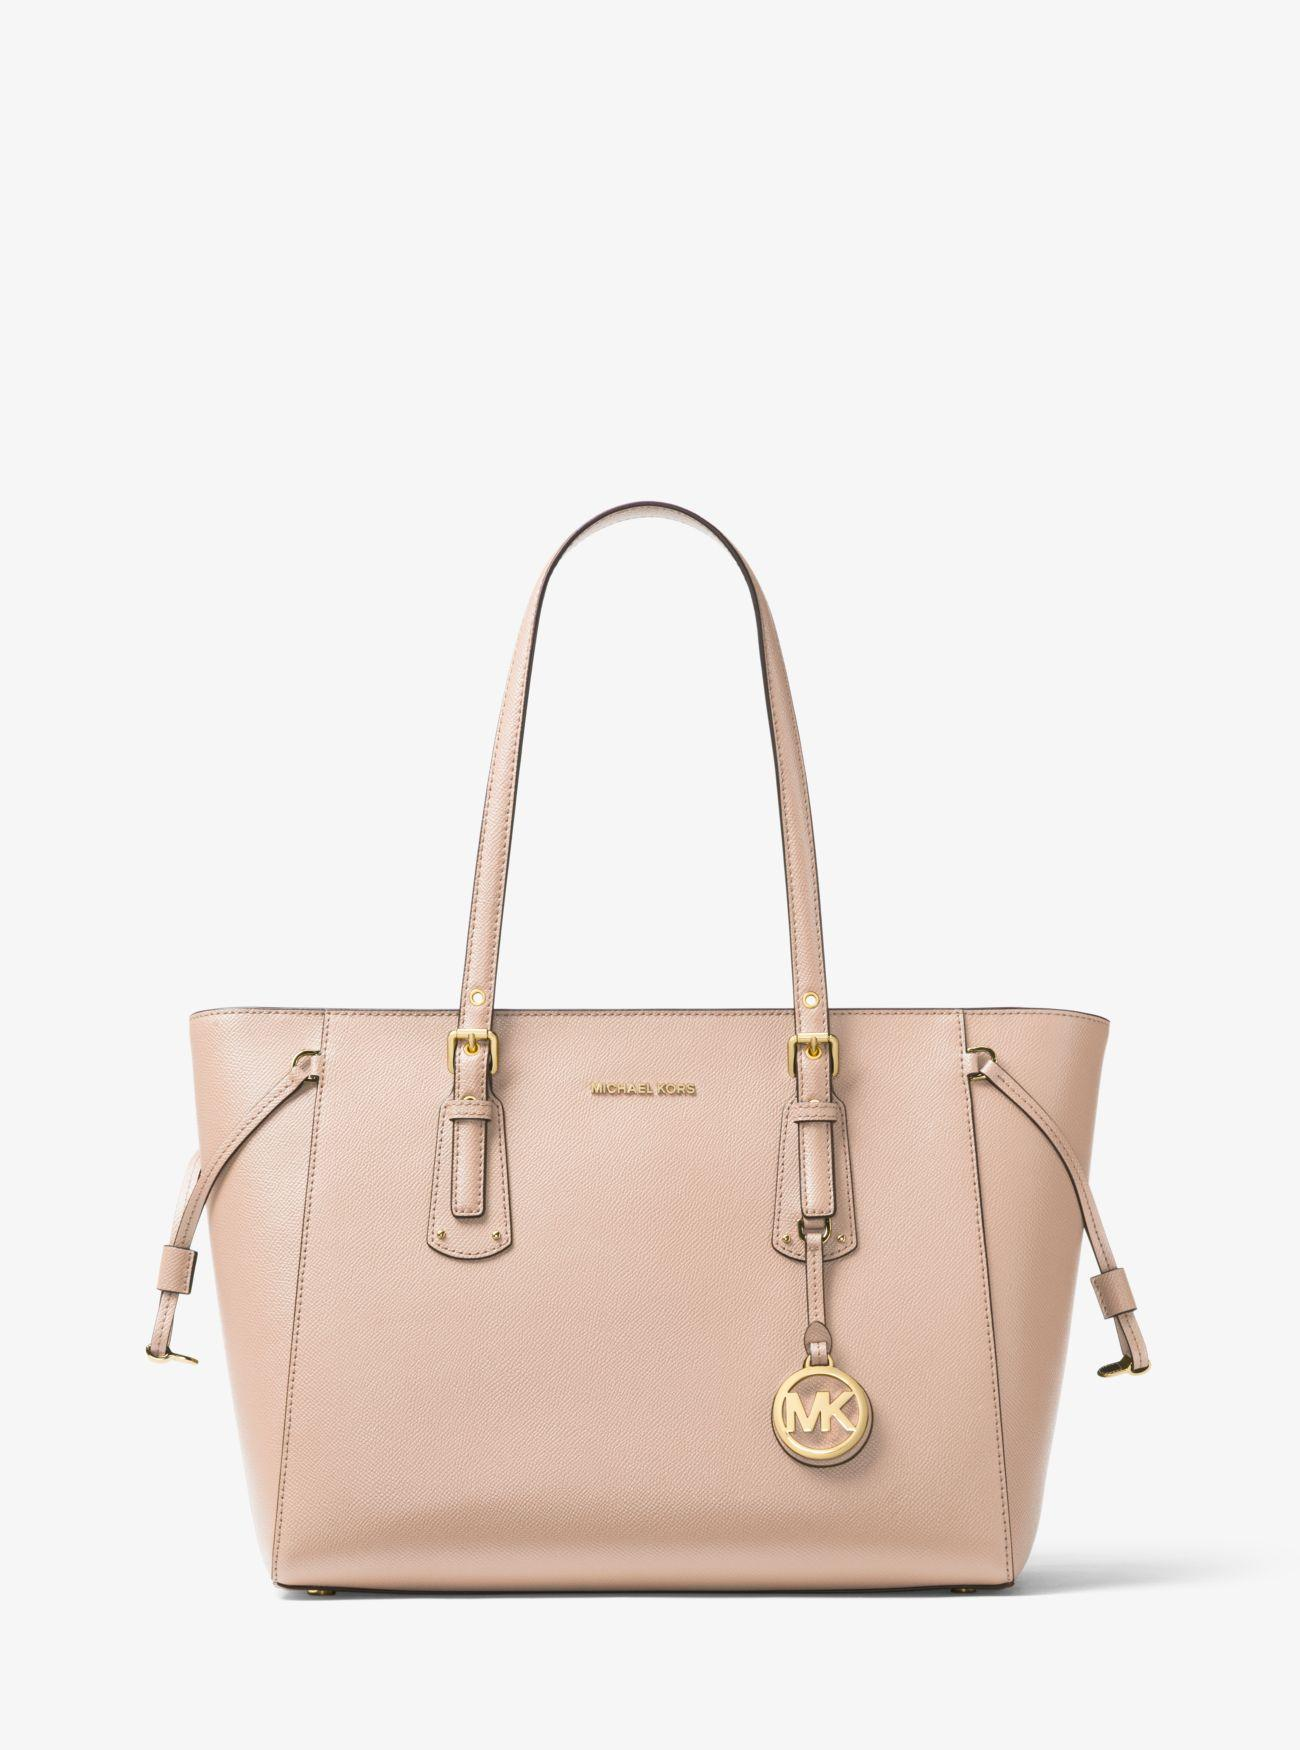 8854e8089bce Michael Kors - Pink Voyager Medium Leather Tote - Lyst. View fullscreen